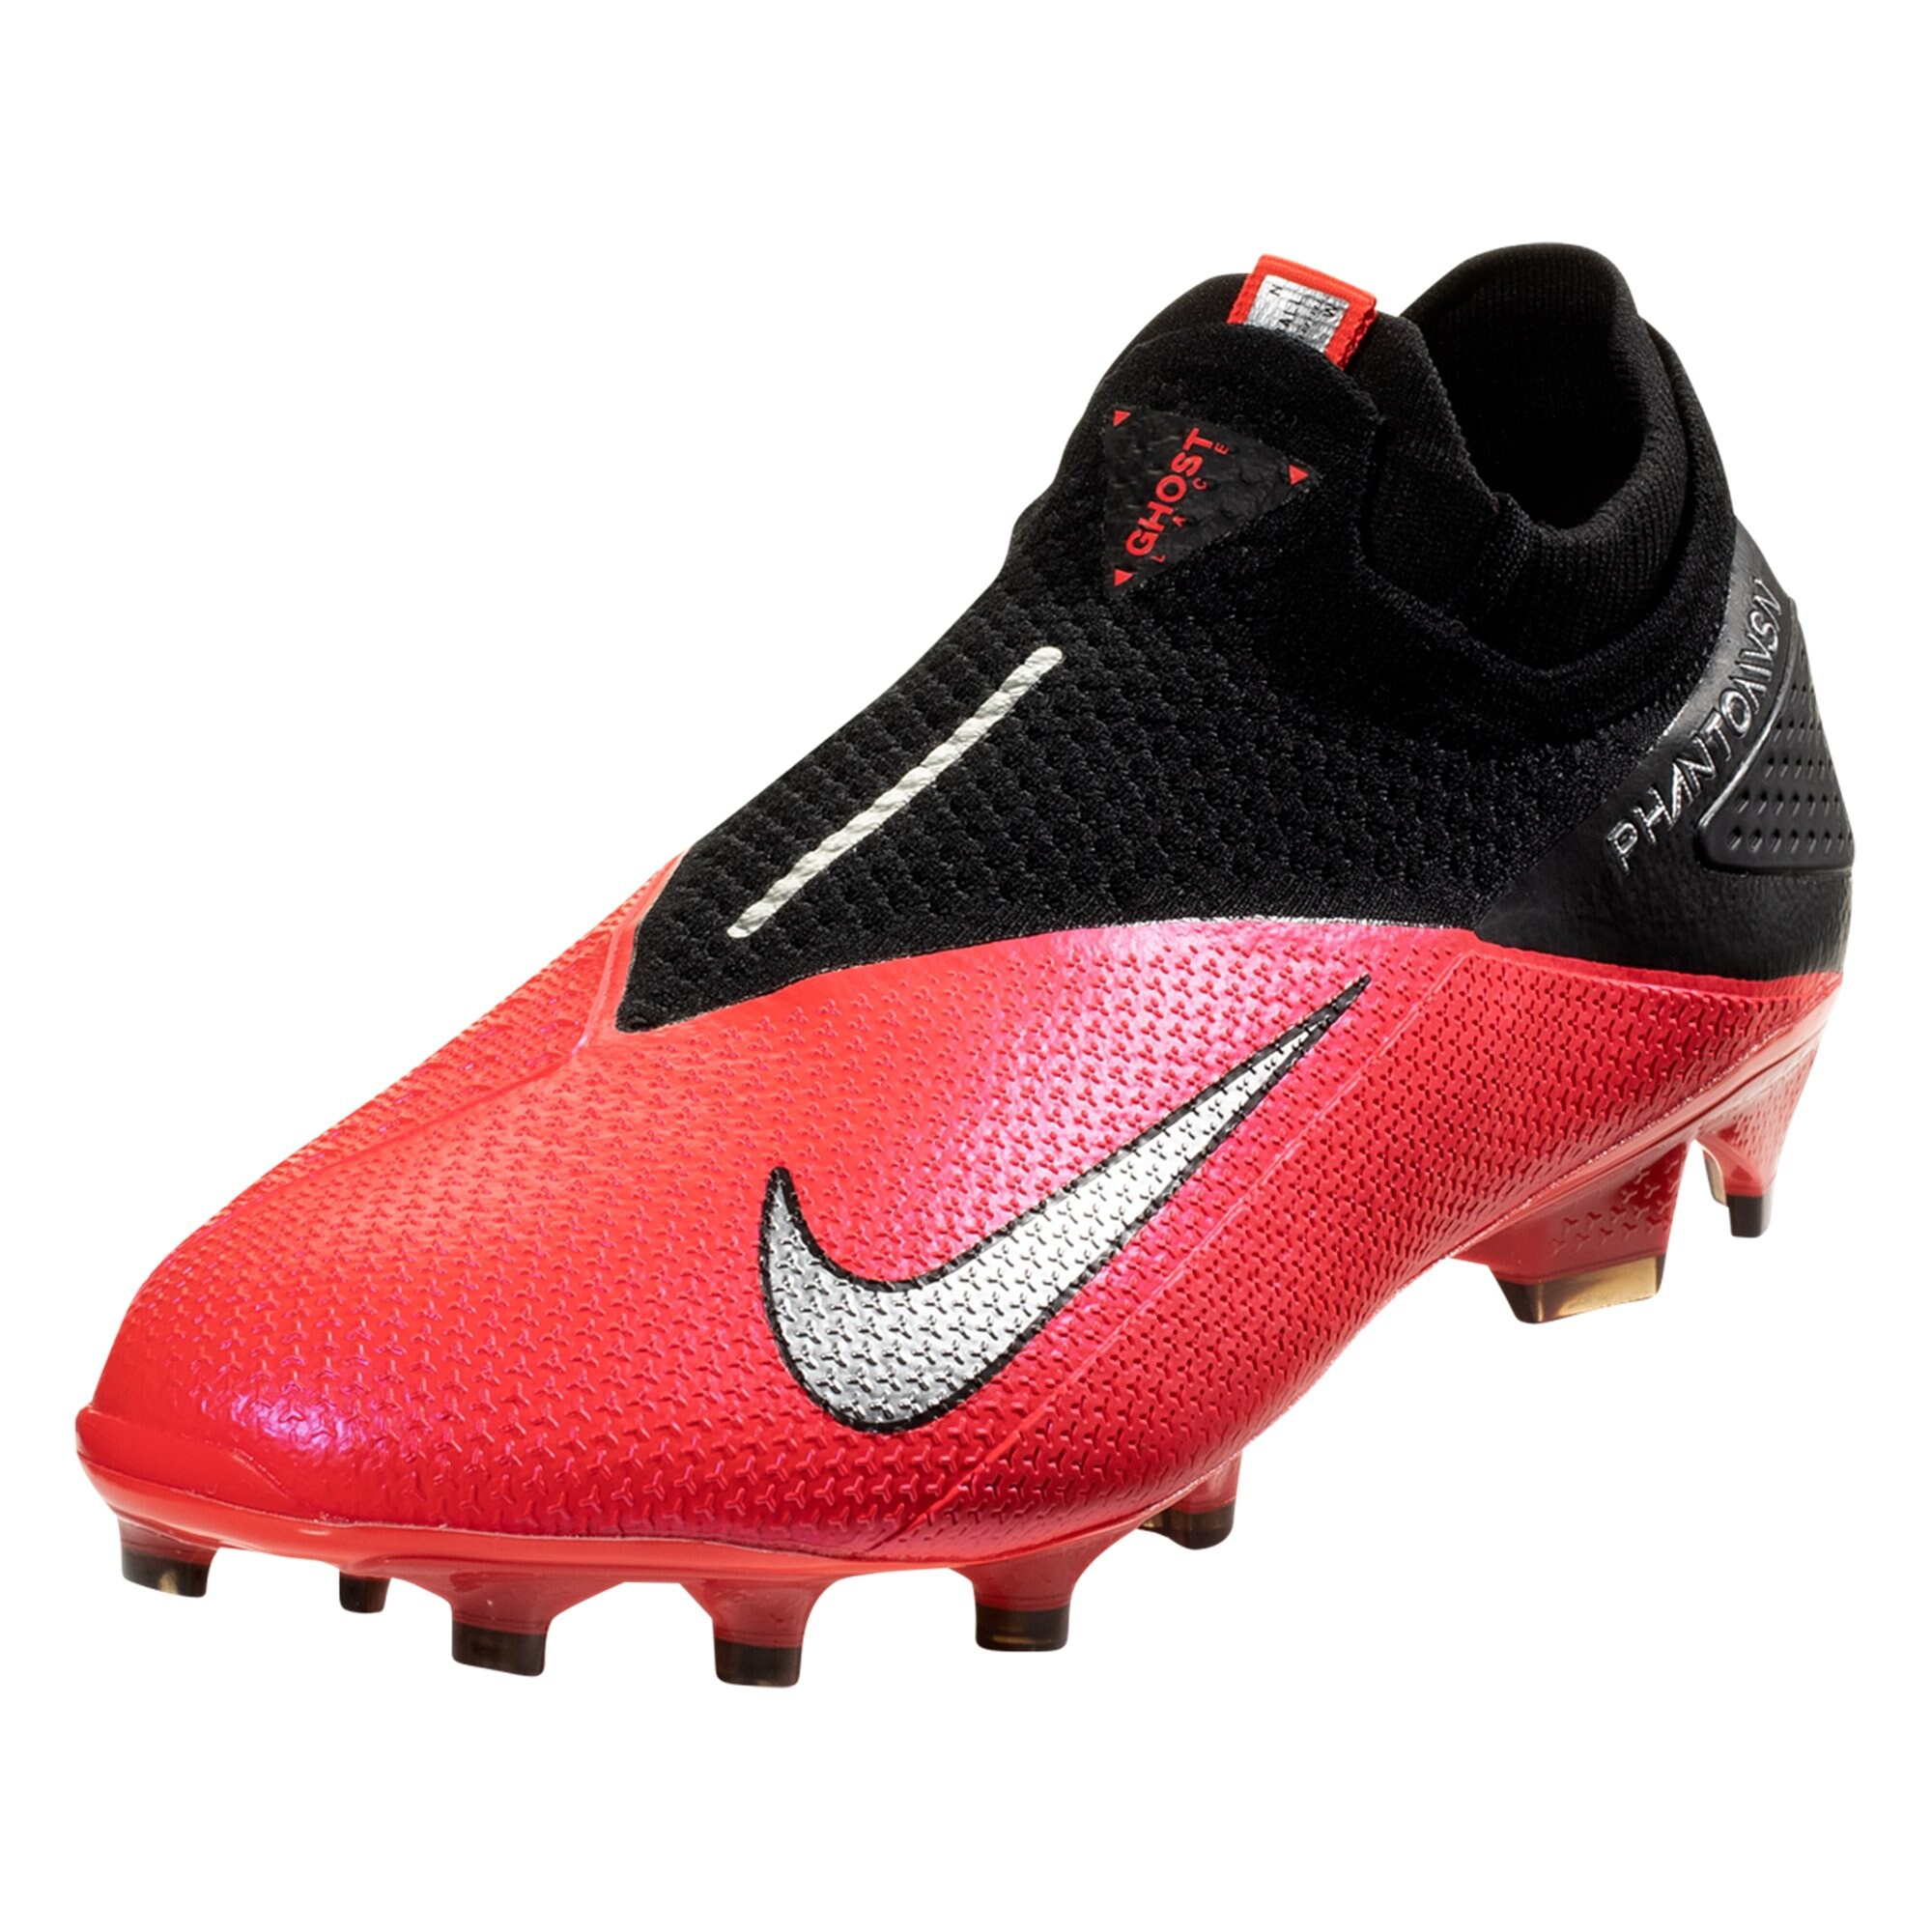 Nike Phantom Vision 2 Elite DF FG Firm Ground Soccer Cleat - Laser Crimson / Metallic Silver / Black